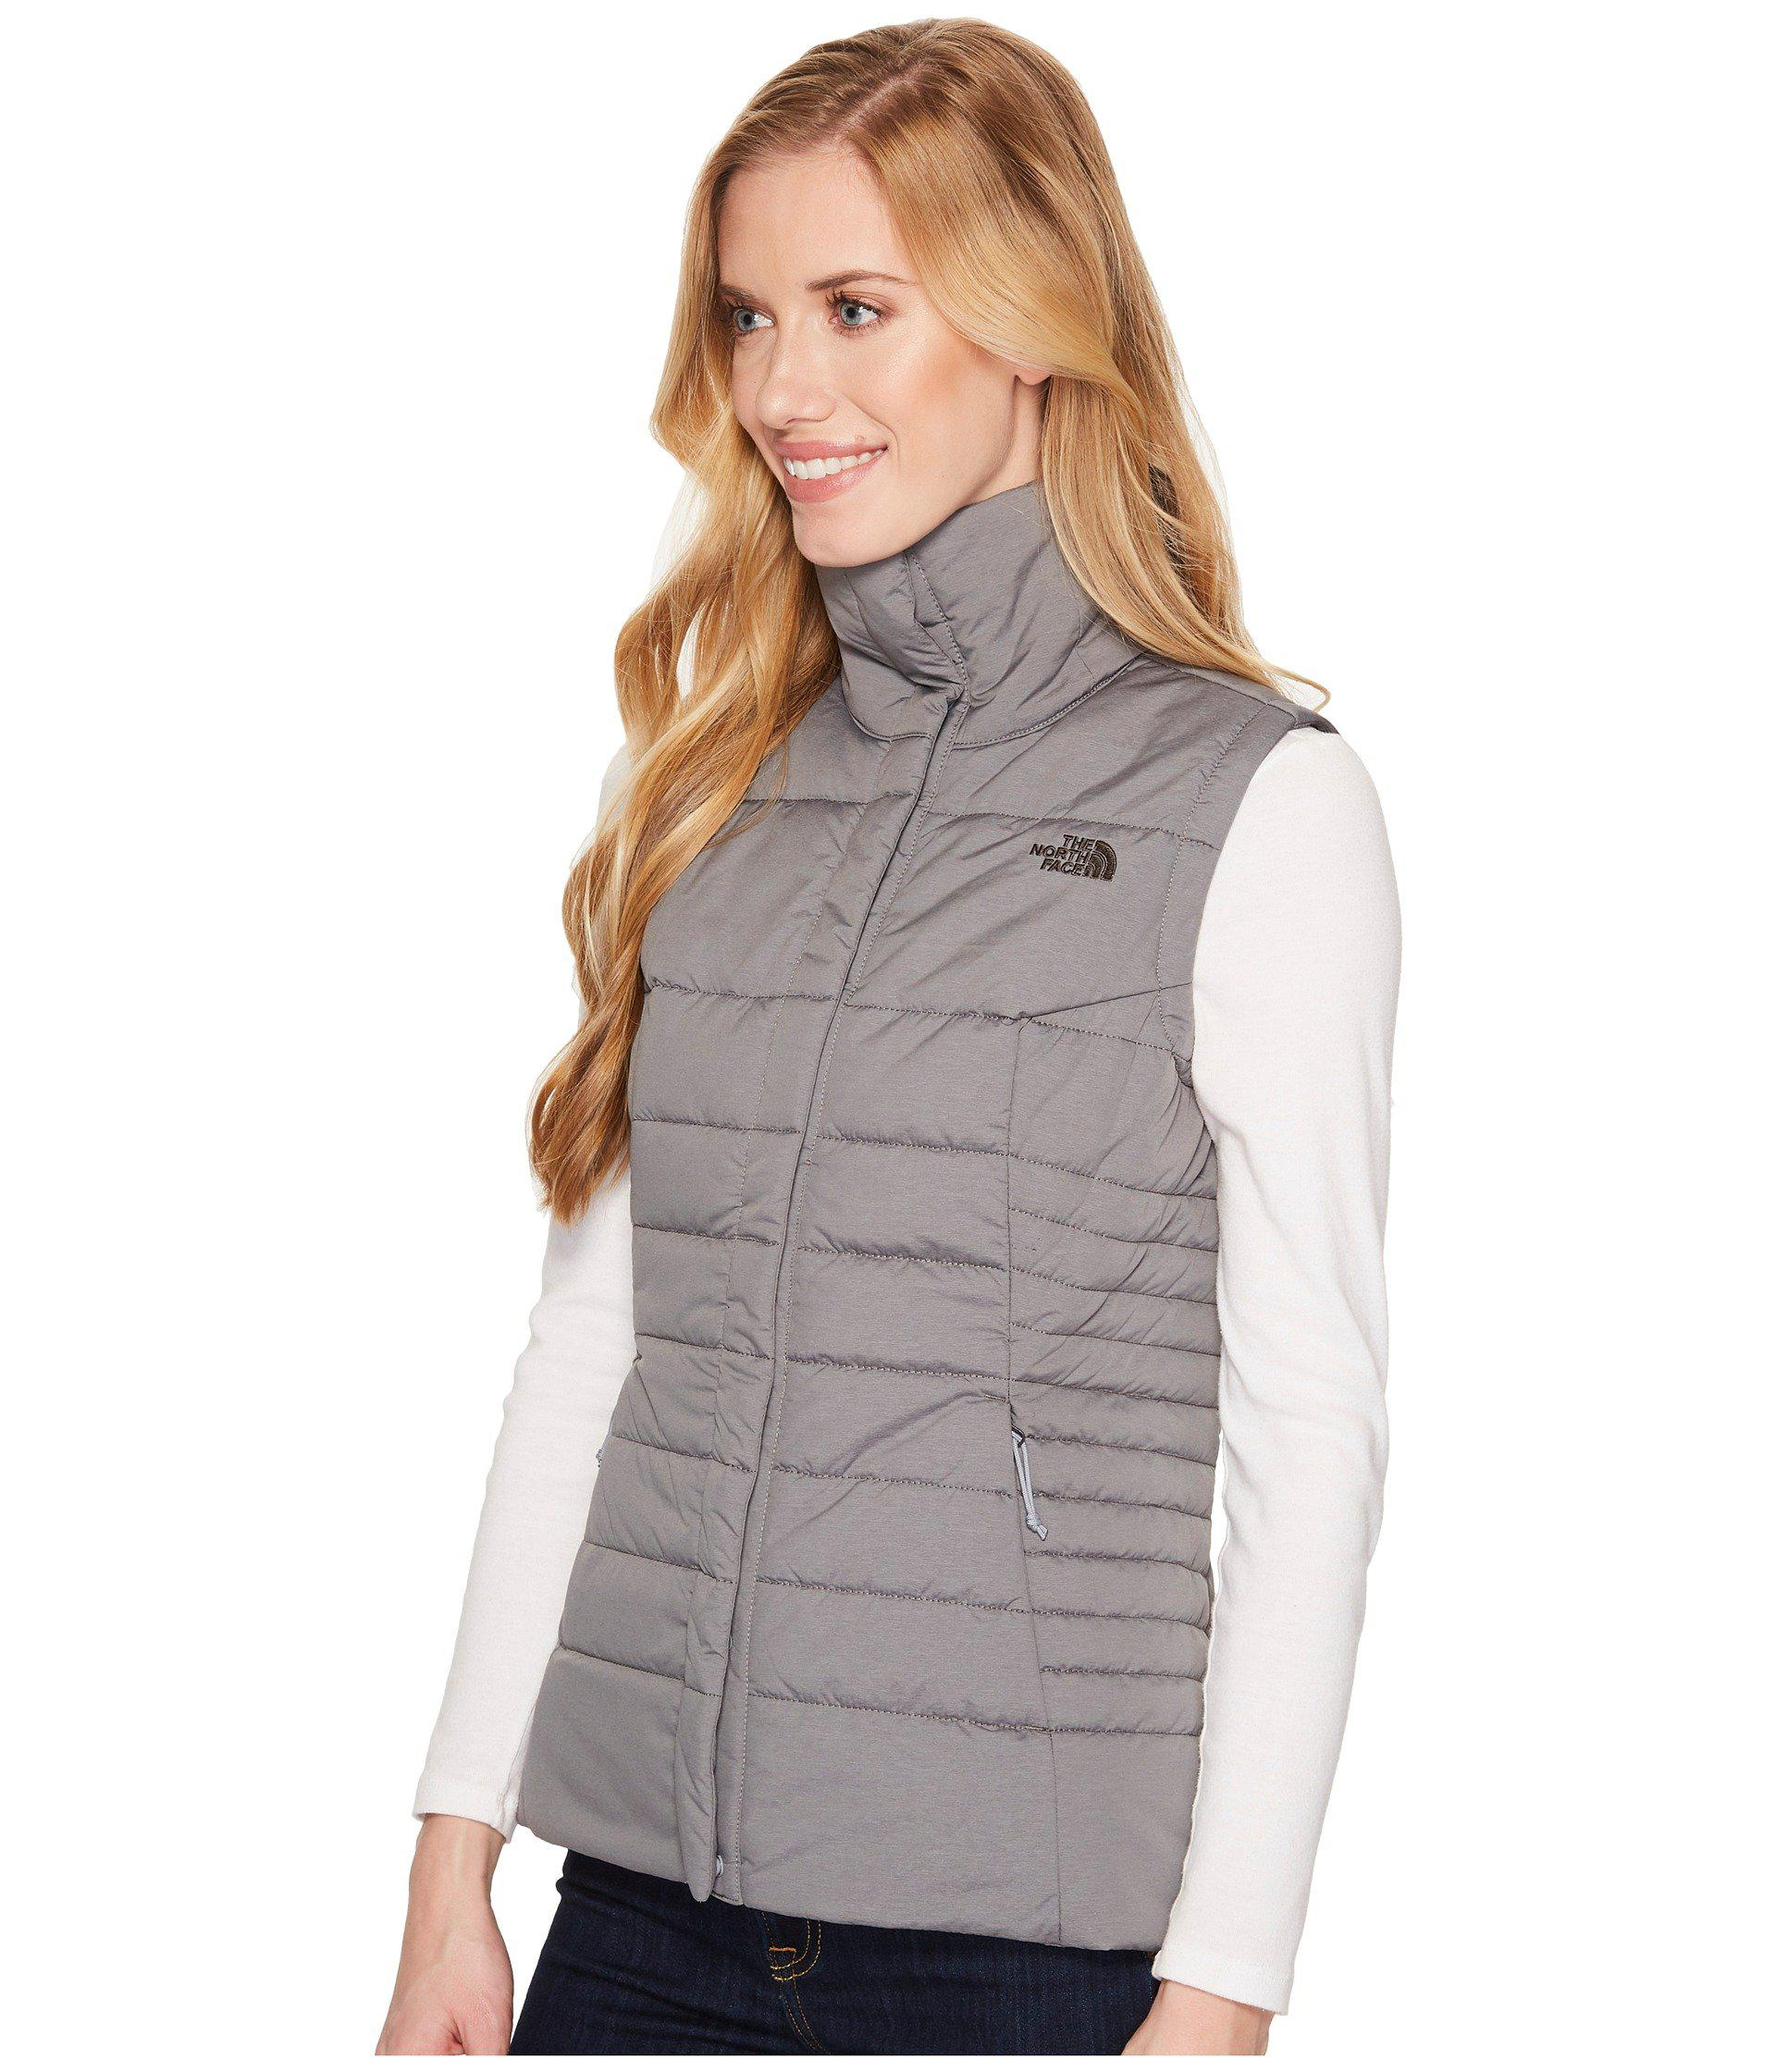 3f2bc3a8bf Lyst - The North Face Harway Vest (tnf Black) Women s Vest in Gray